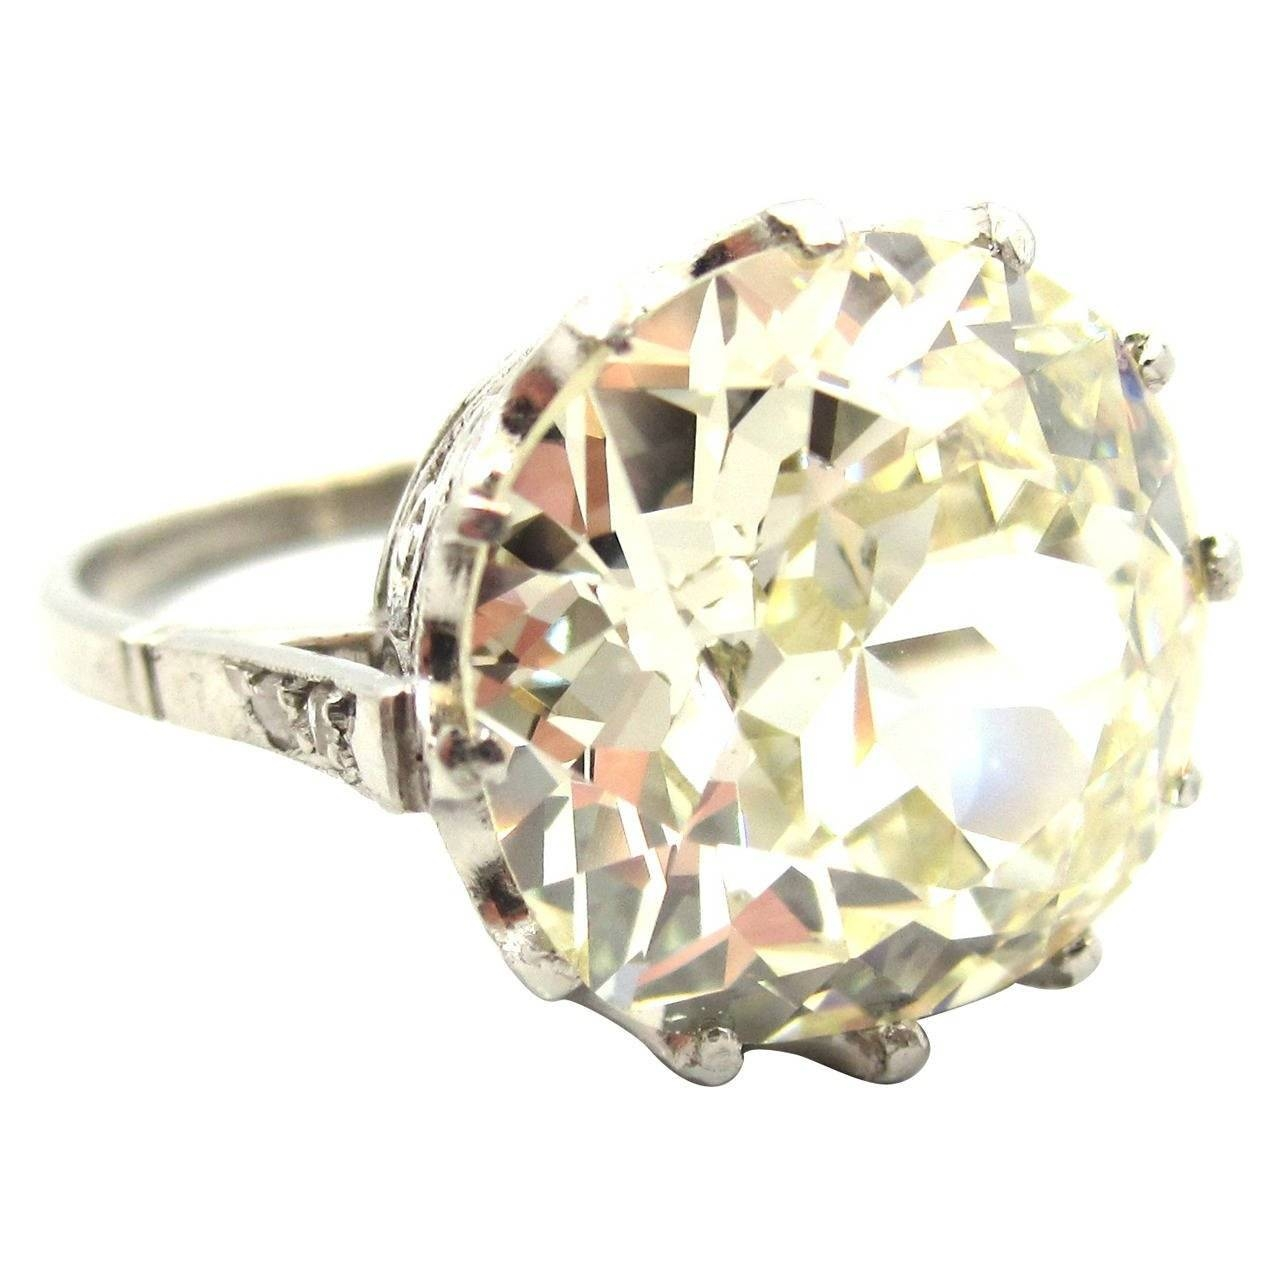 Incredible Edwardian 7.66 Carat Cushion Cut Diamond Crown Style Regarding Crown Style Engagement Rings (Gallery 1 of 15)